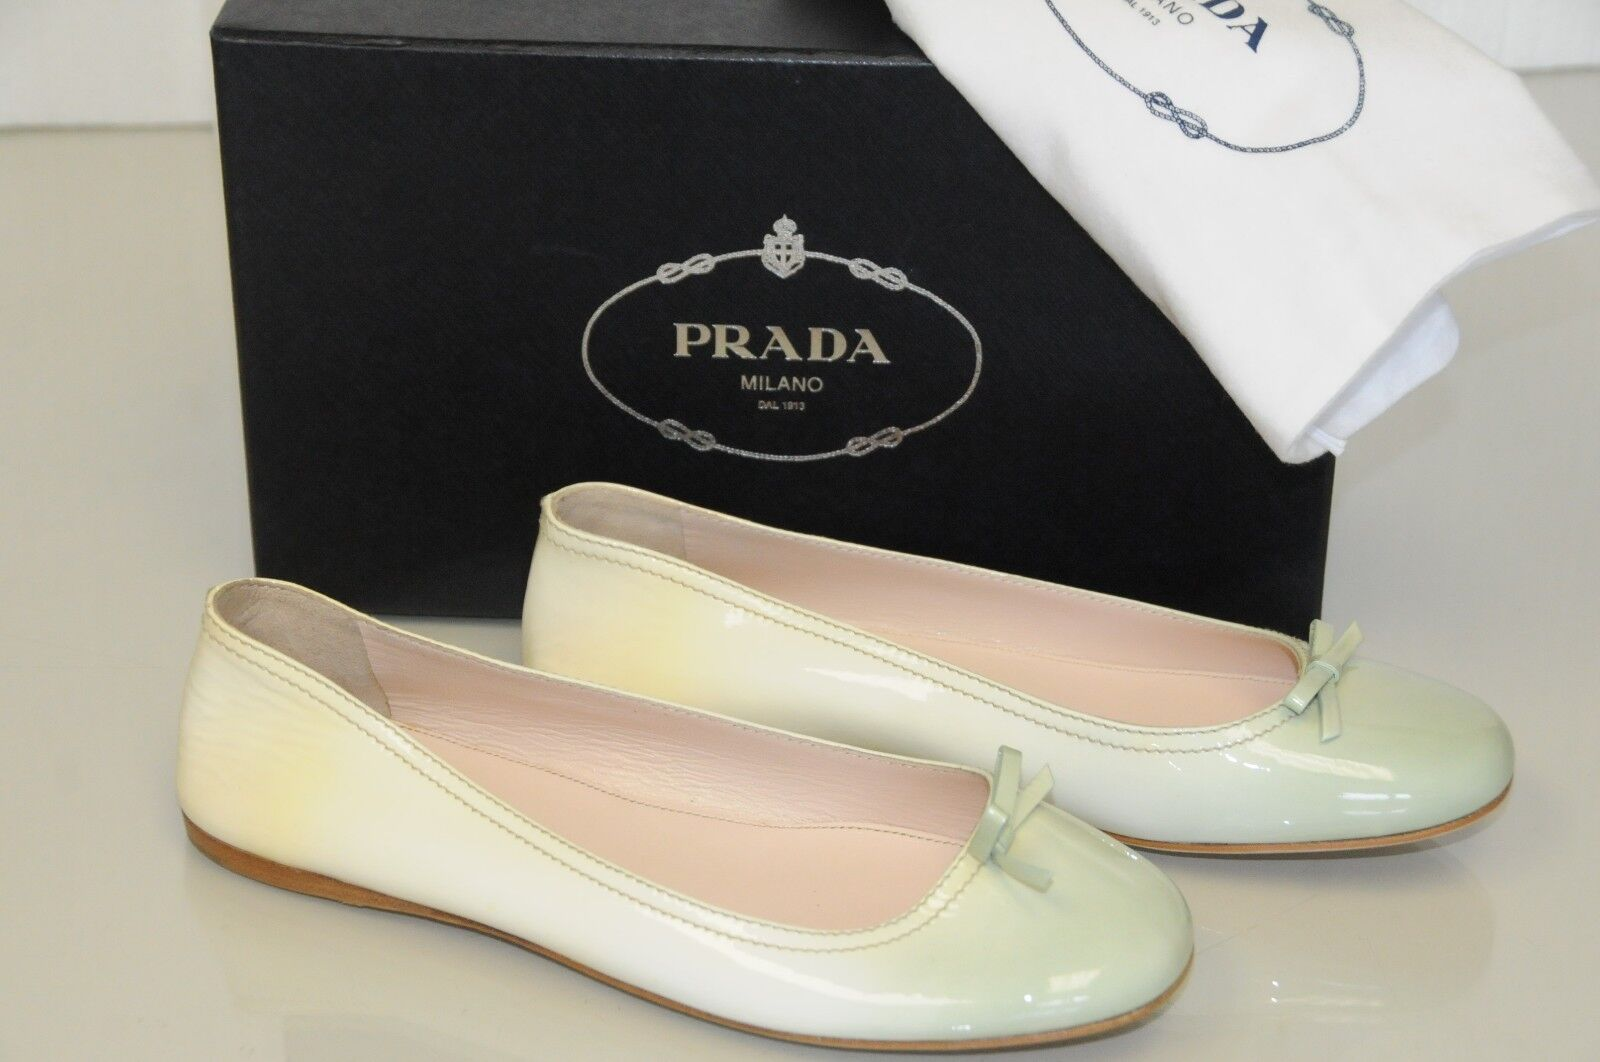 NEW Prada Flats Gradient Patent Pale Shoes Green Yellow Cream Bow Flat Shoes Pale 40 3f345f